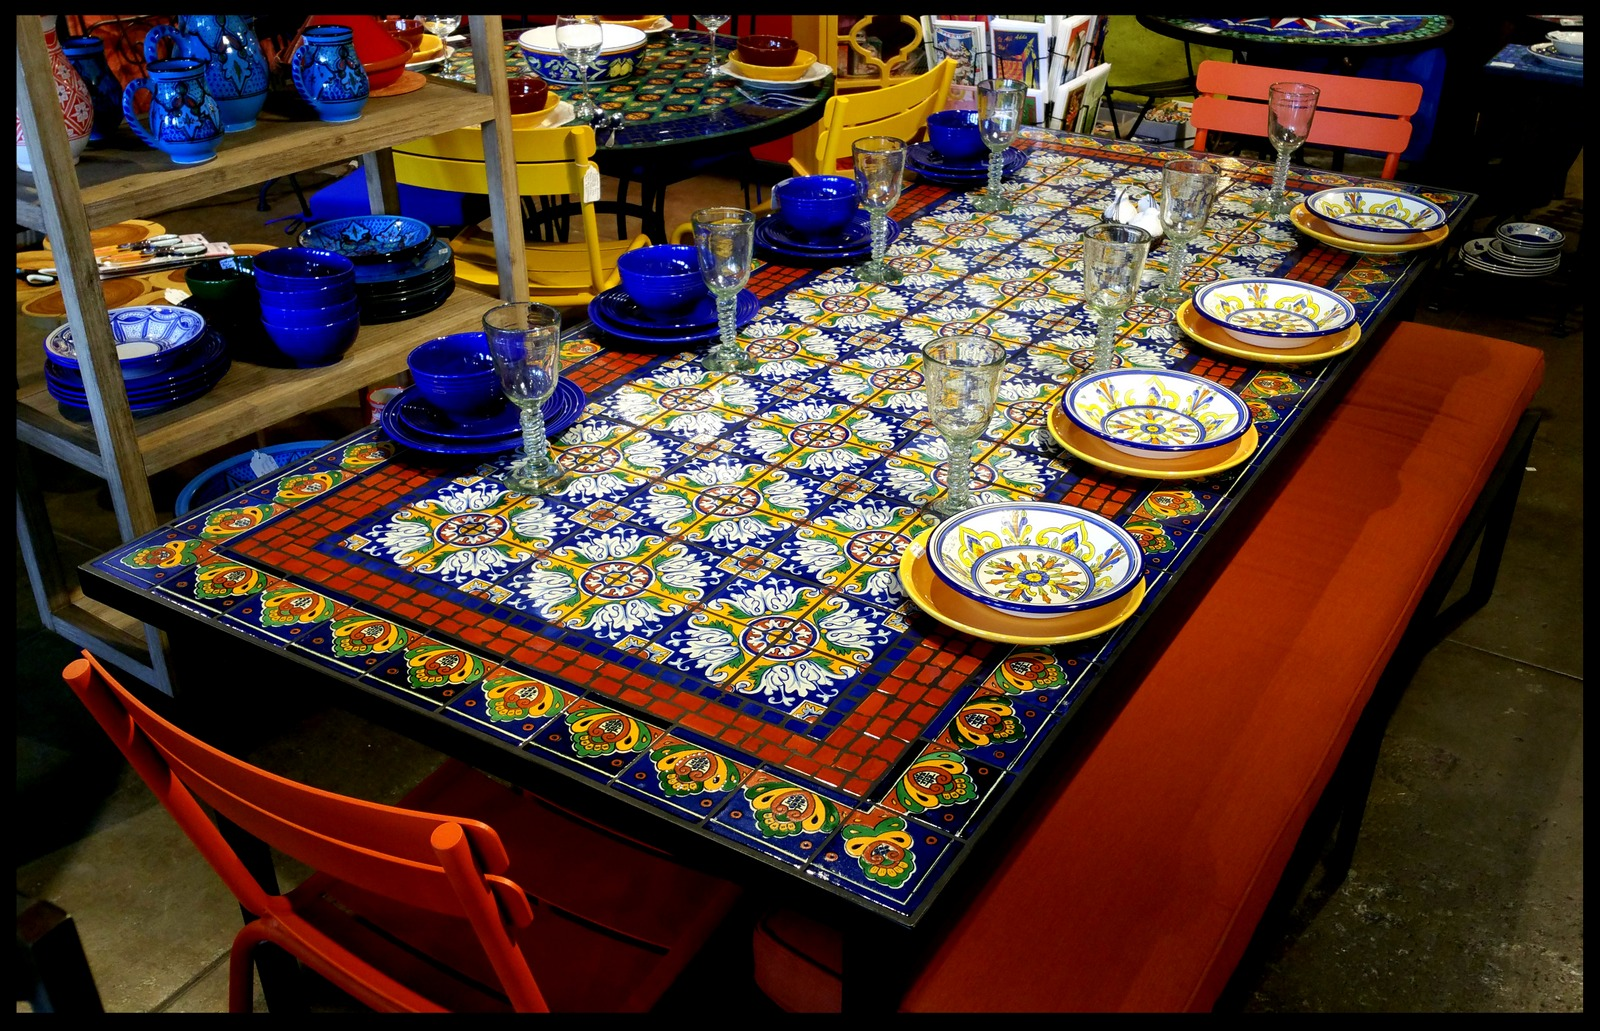 TILE MOSAIC DINING TABLE GOTIGO